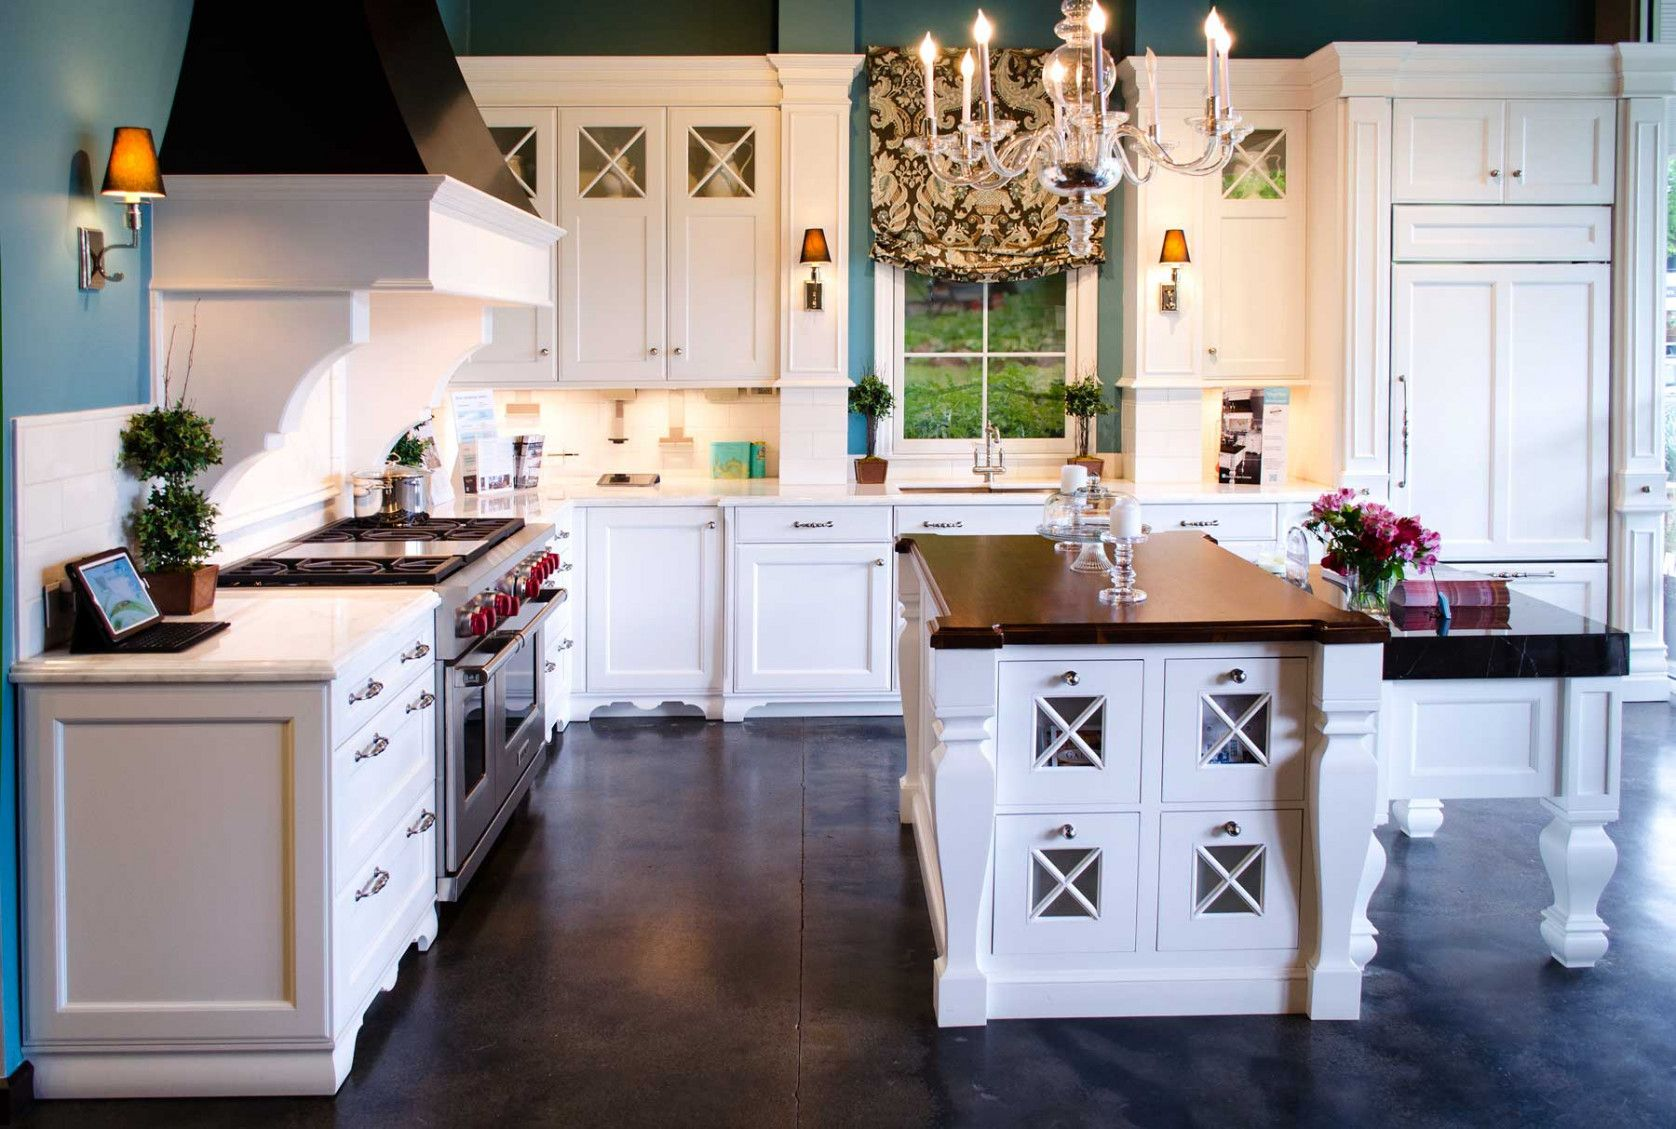 99 Showroom Display Cabinets For Sale Apartment Kitchen Cabinet Ideas Check More At Http Kitchen Cabinets Models Kitchen Cabinets For Sale Cabinets For Sale